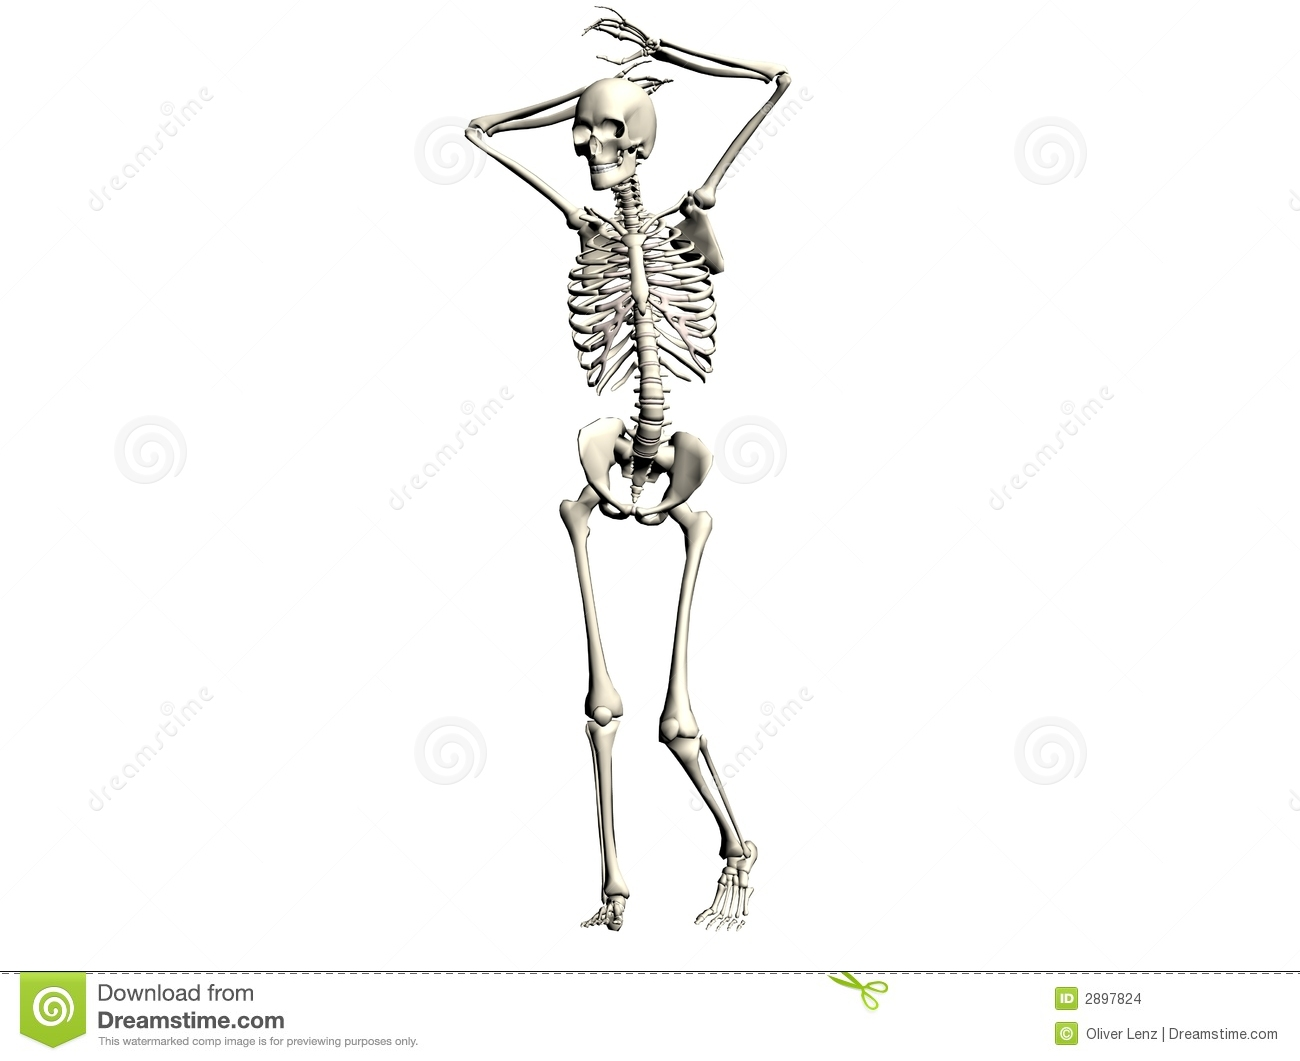 Skeleton Illustration stock illustration. Illustration of human ...